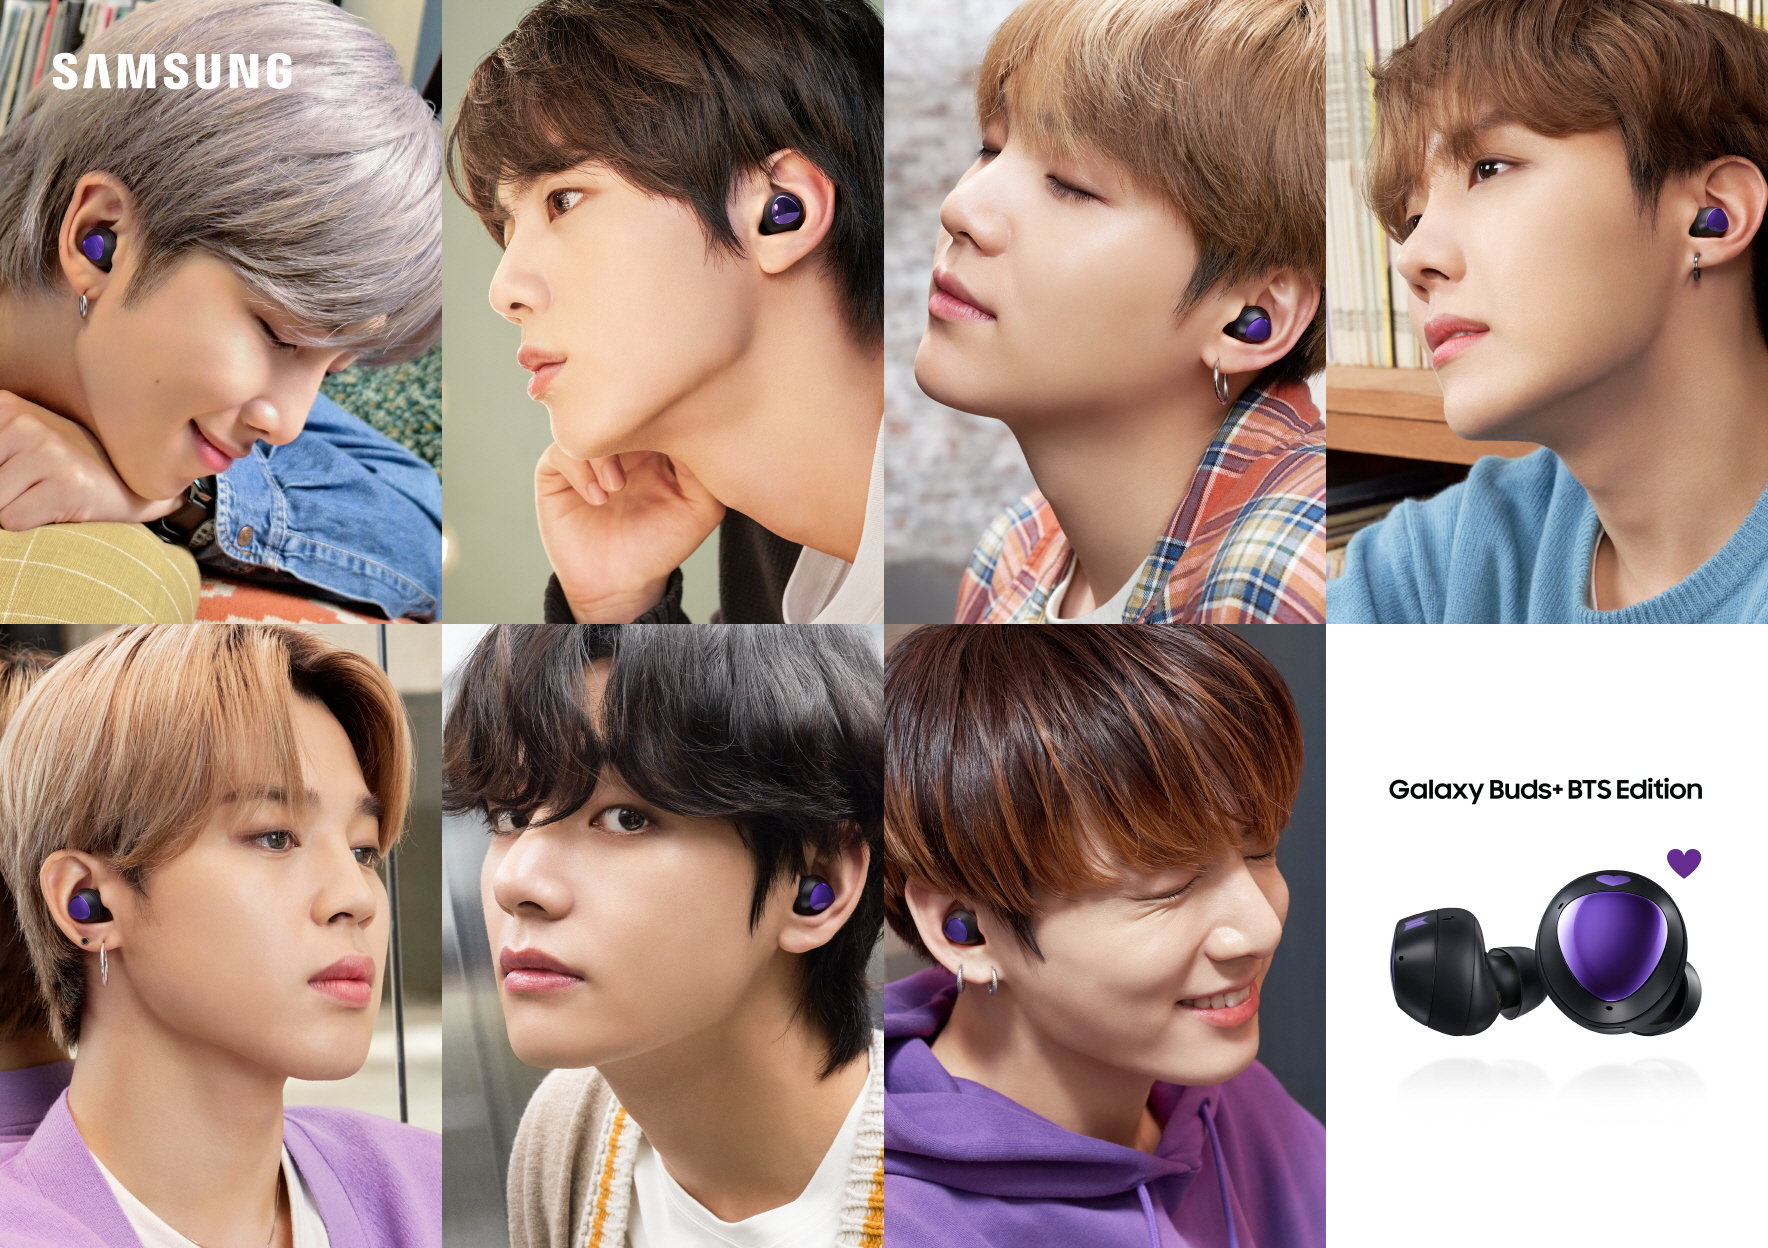 Introducing Samsung Galaxy S20+ 5G and Galaxy Buds+ BTS Editions